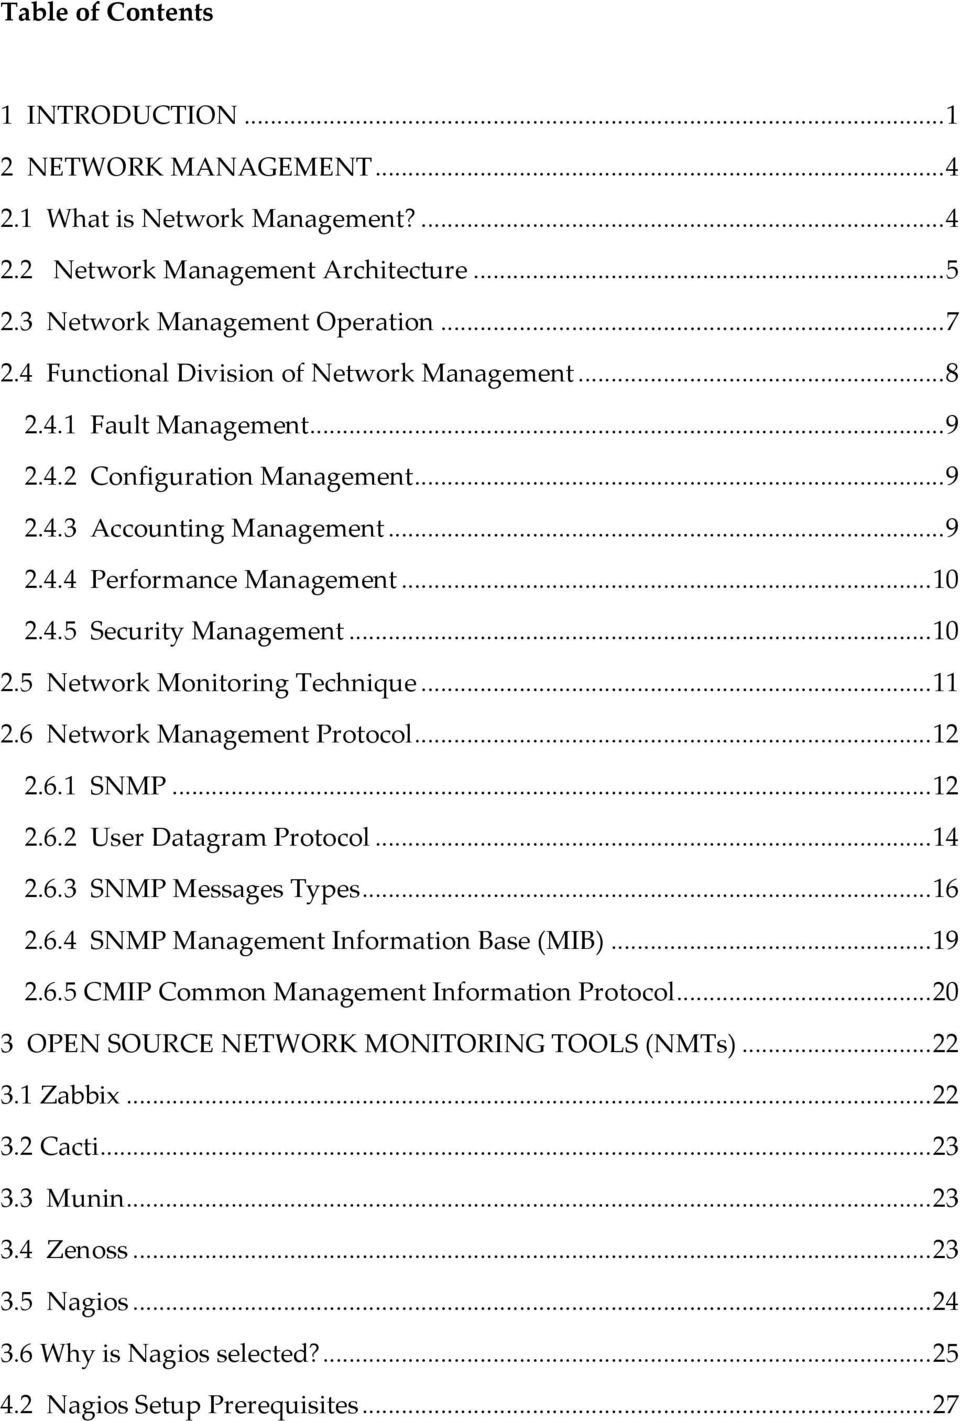 .. 10 2.5 Network Monitoring Technique... 11 2.6 Network Management Protocol... 12 2.6.1 SNMP... 12 2.6.2 User Datagram Protocol... 14 2.6.3 SNMP Messages Types... 16 2.6.4 SNMP Management Information Base (MIB).